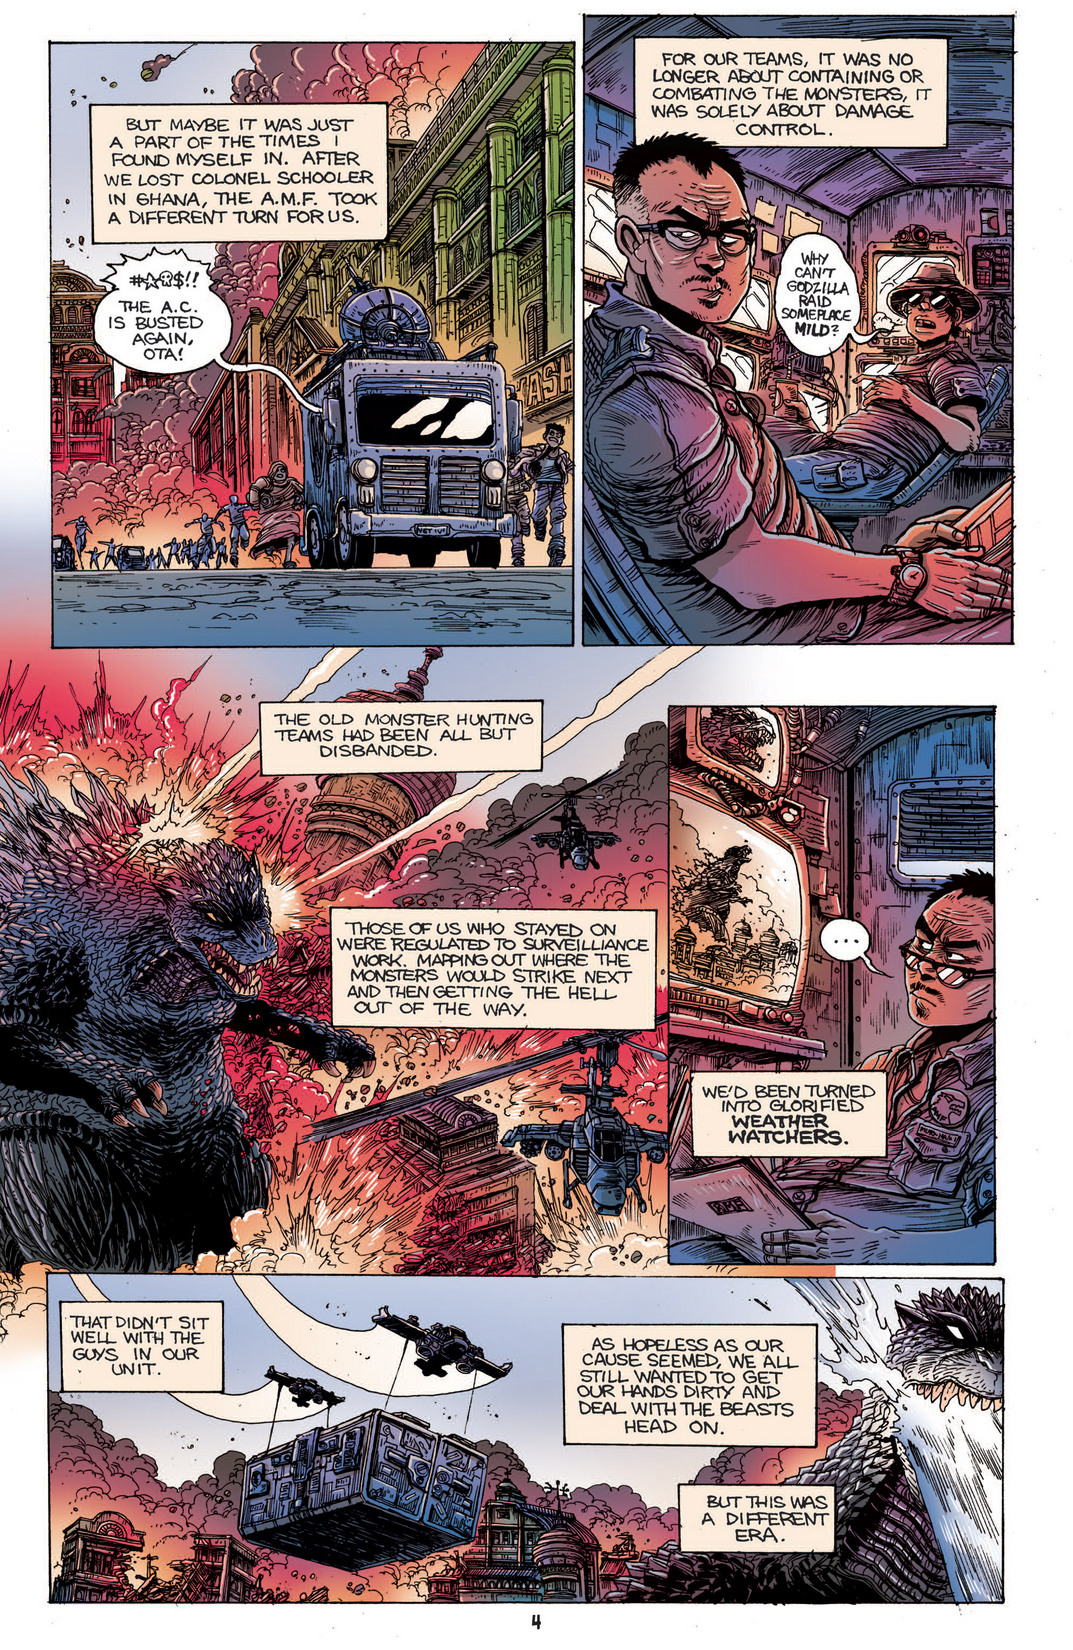 HALF-CENTURY WAR Issue 4 - Page 1.jpg